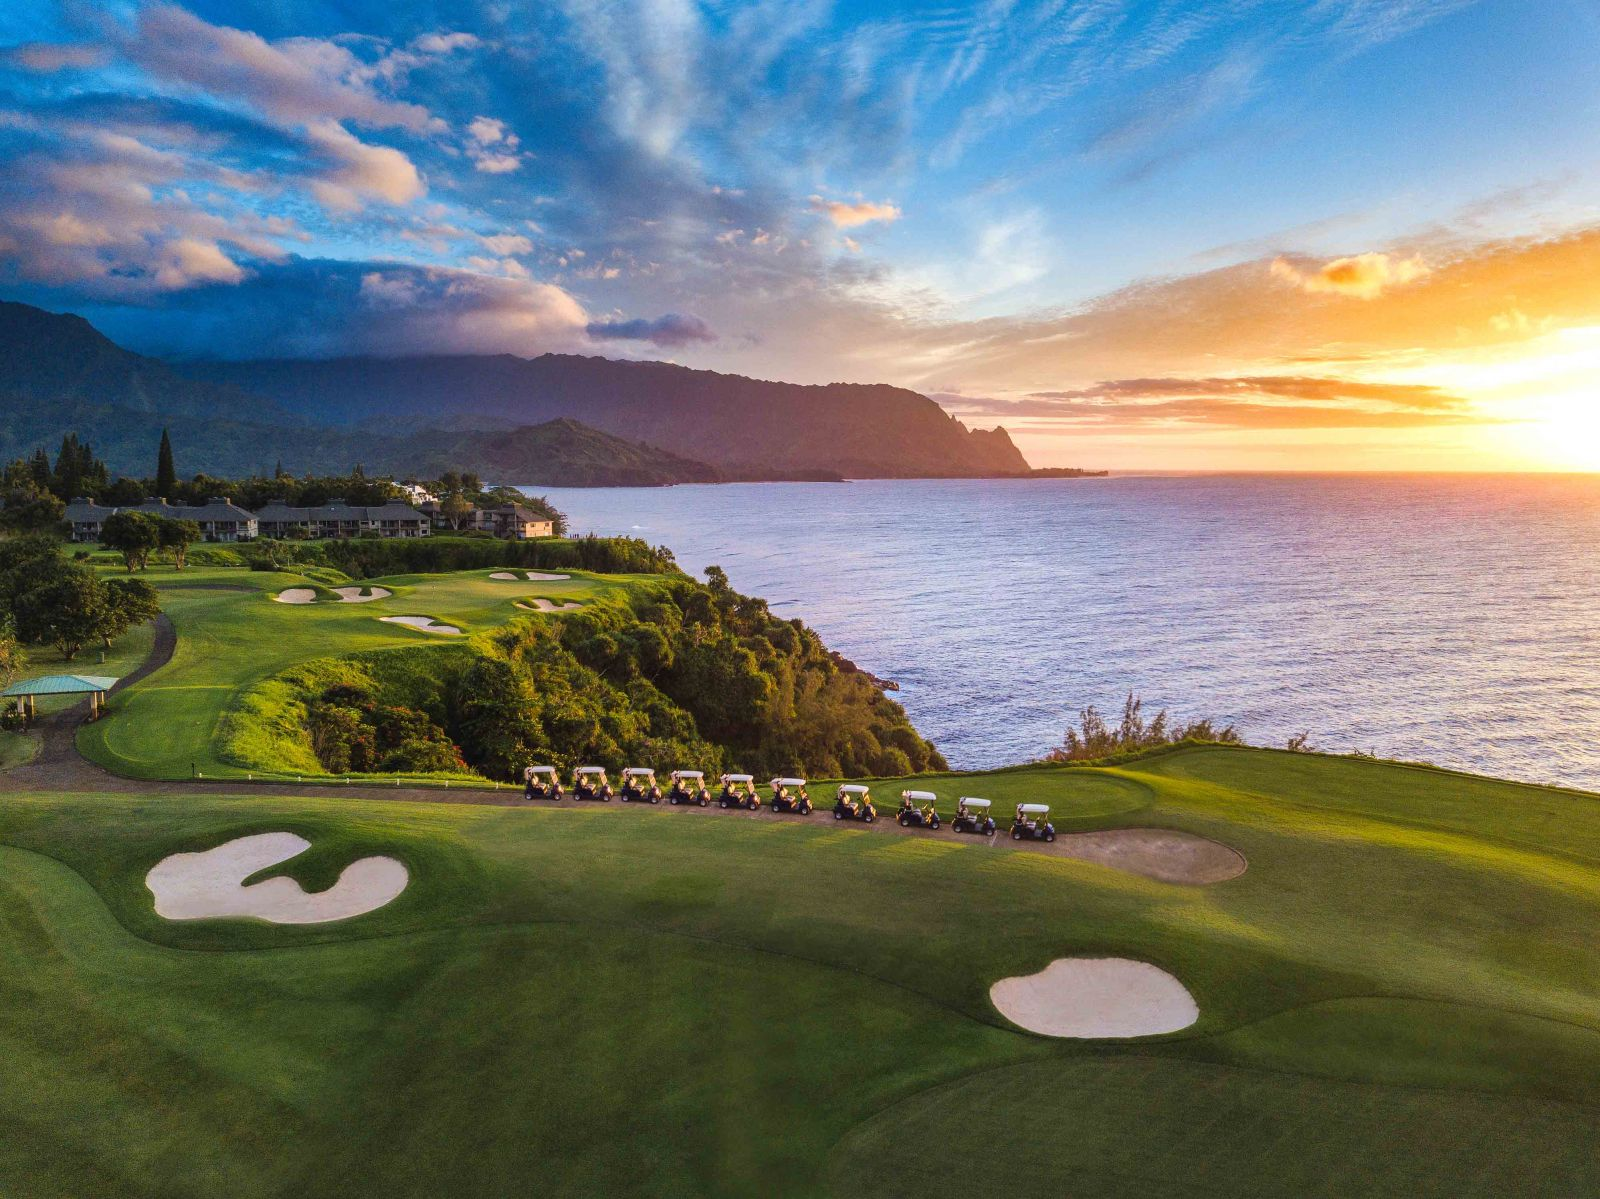 Princeville Makai Golf Club - Official Website - Best ... on bicycle in water, go kart in water, golf hole in water, backhoe in water, golf near water, golf hole on water, tools in water, scooter in water, electric vehicle in water, gps in water, trailer in water, generator in water, volkswagen in water, grill in water, camper in water, wheelchair in water, golf by water, bus in water, utv in water, plants that grow in water,